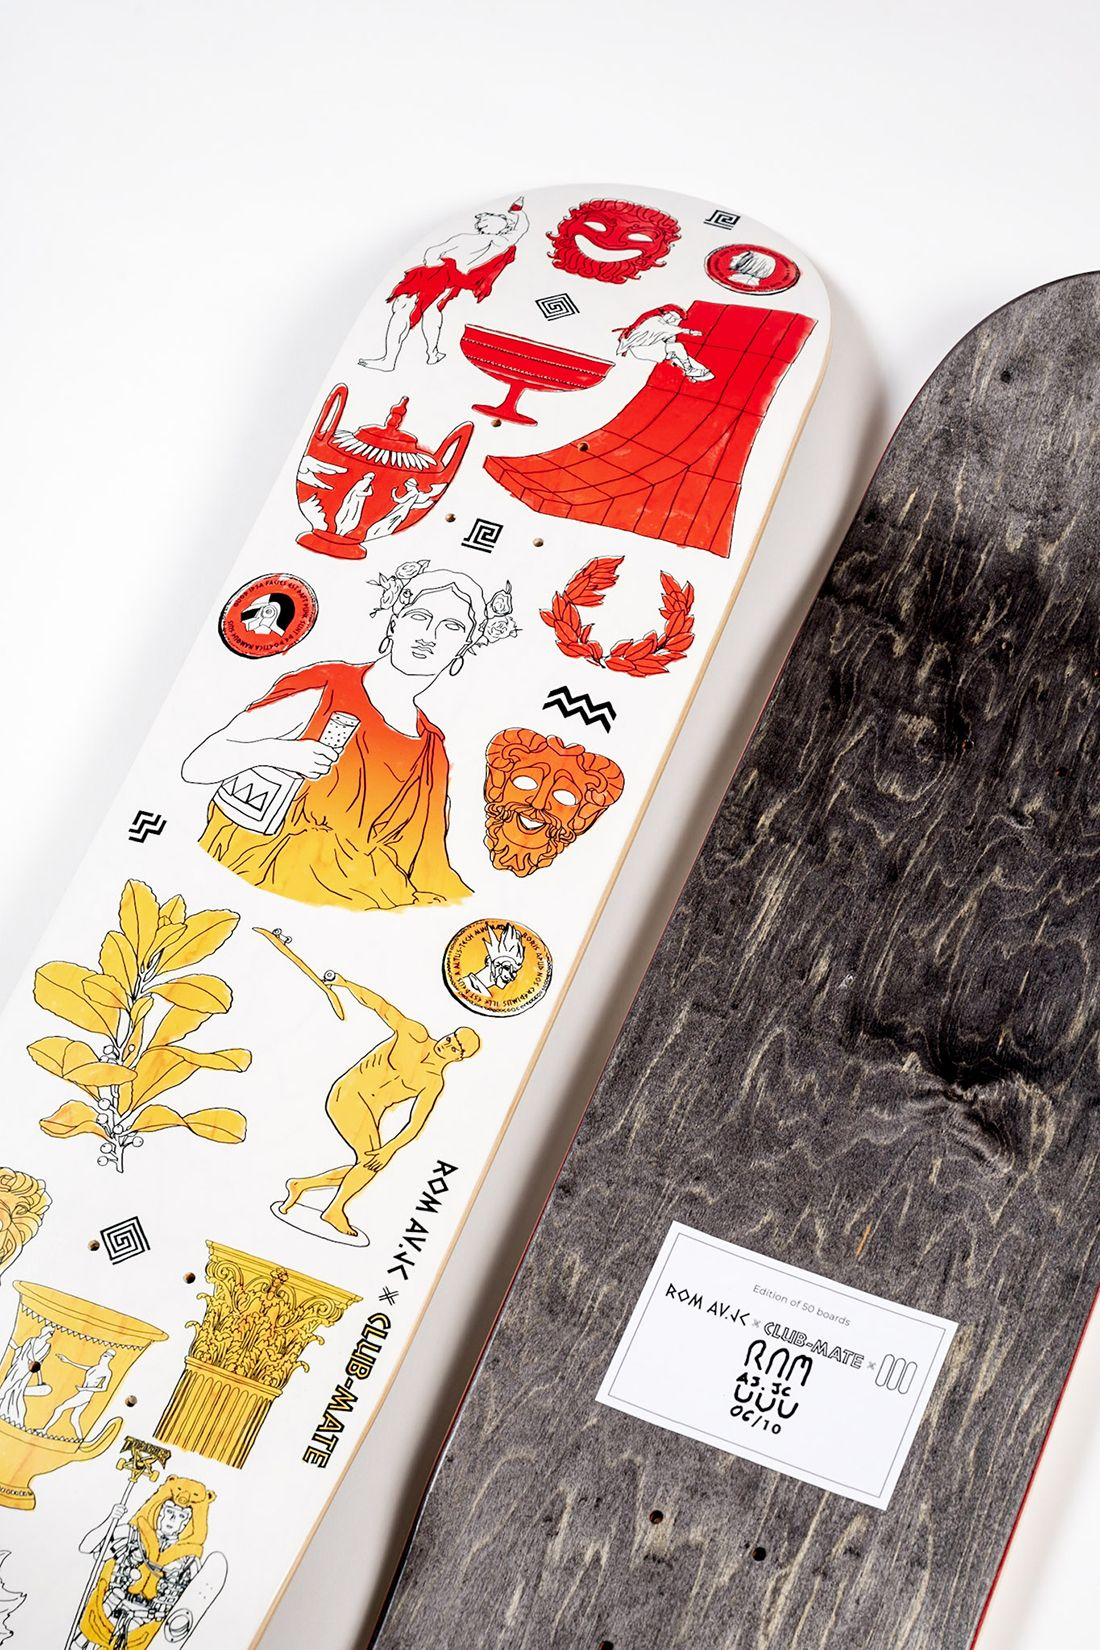 Clubmate X RomAvJC X The Daily Board Skateboard 2